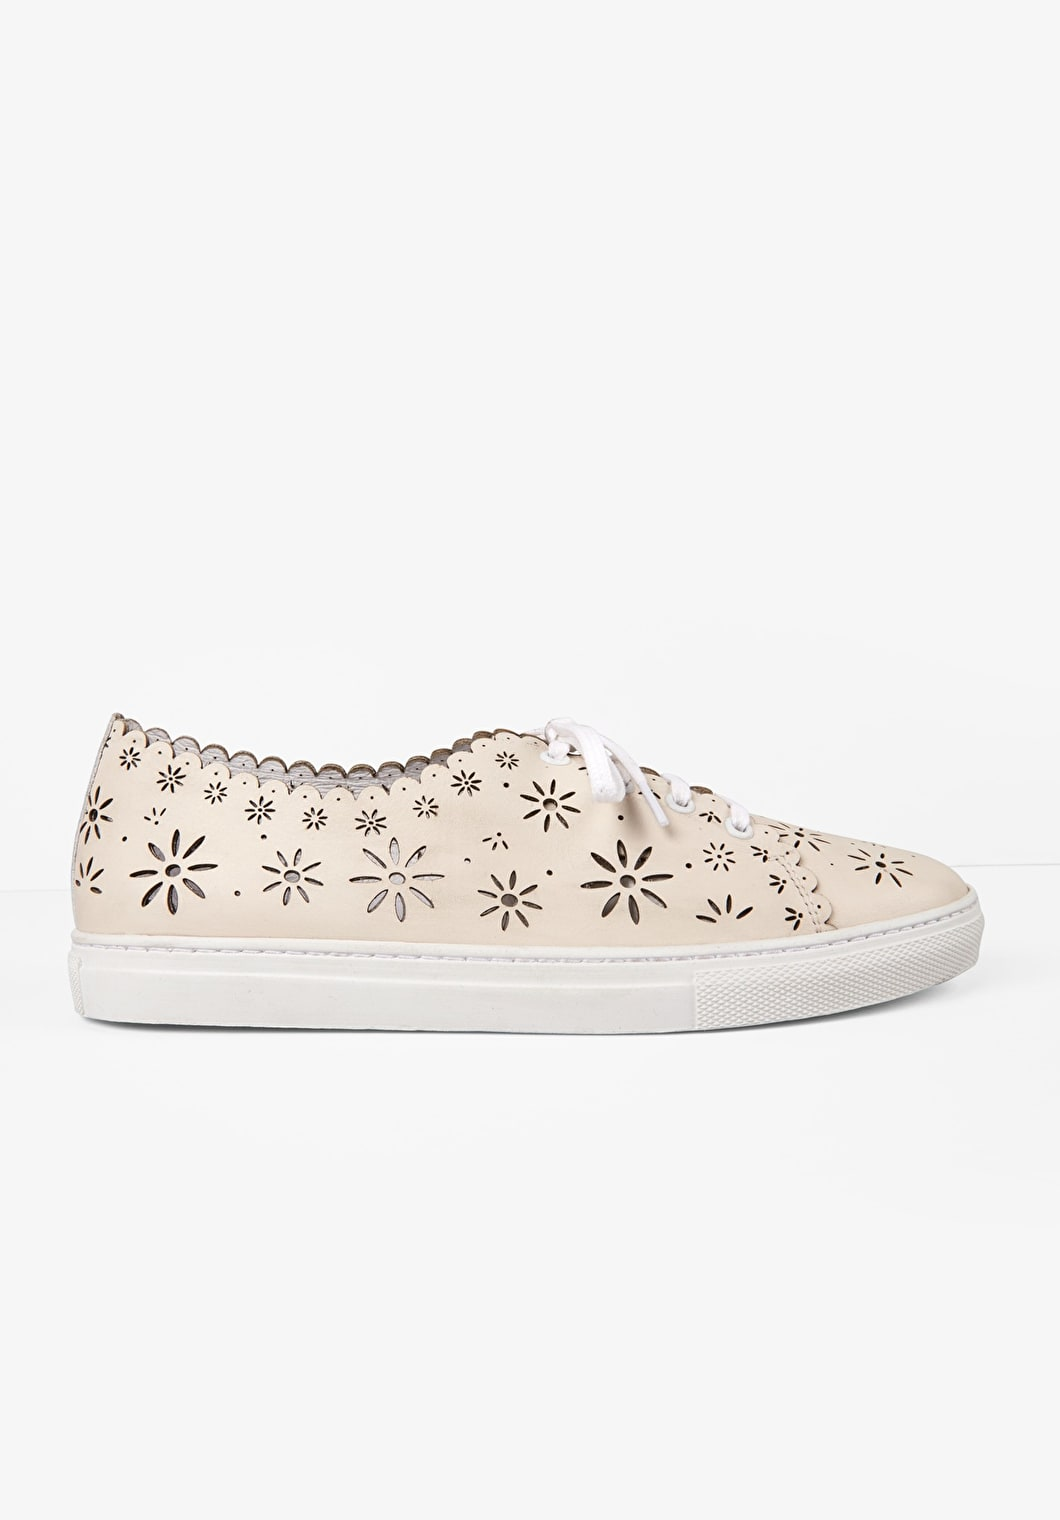 Floral cut out leather lace-up trainers with a scalloped trim in cream